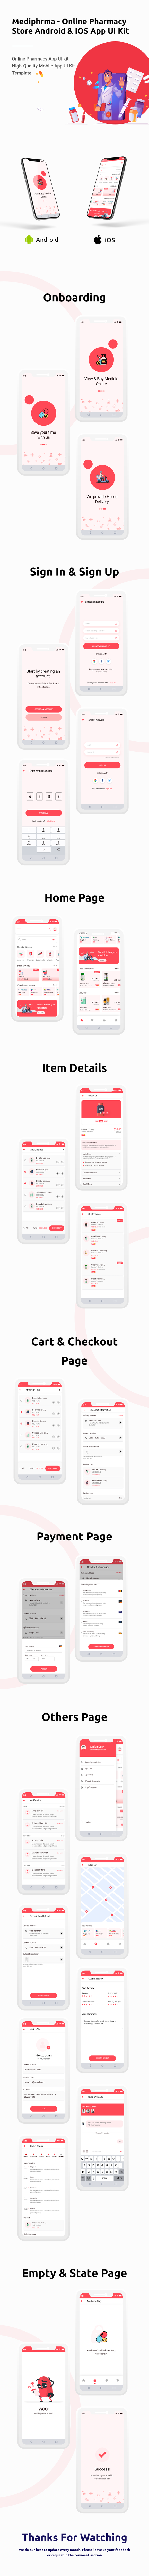 Mediphrma - Online Pharmacy Store Android & IOS UI Kit - 2